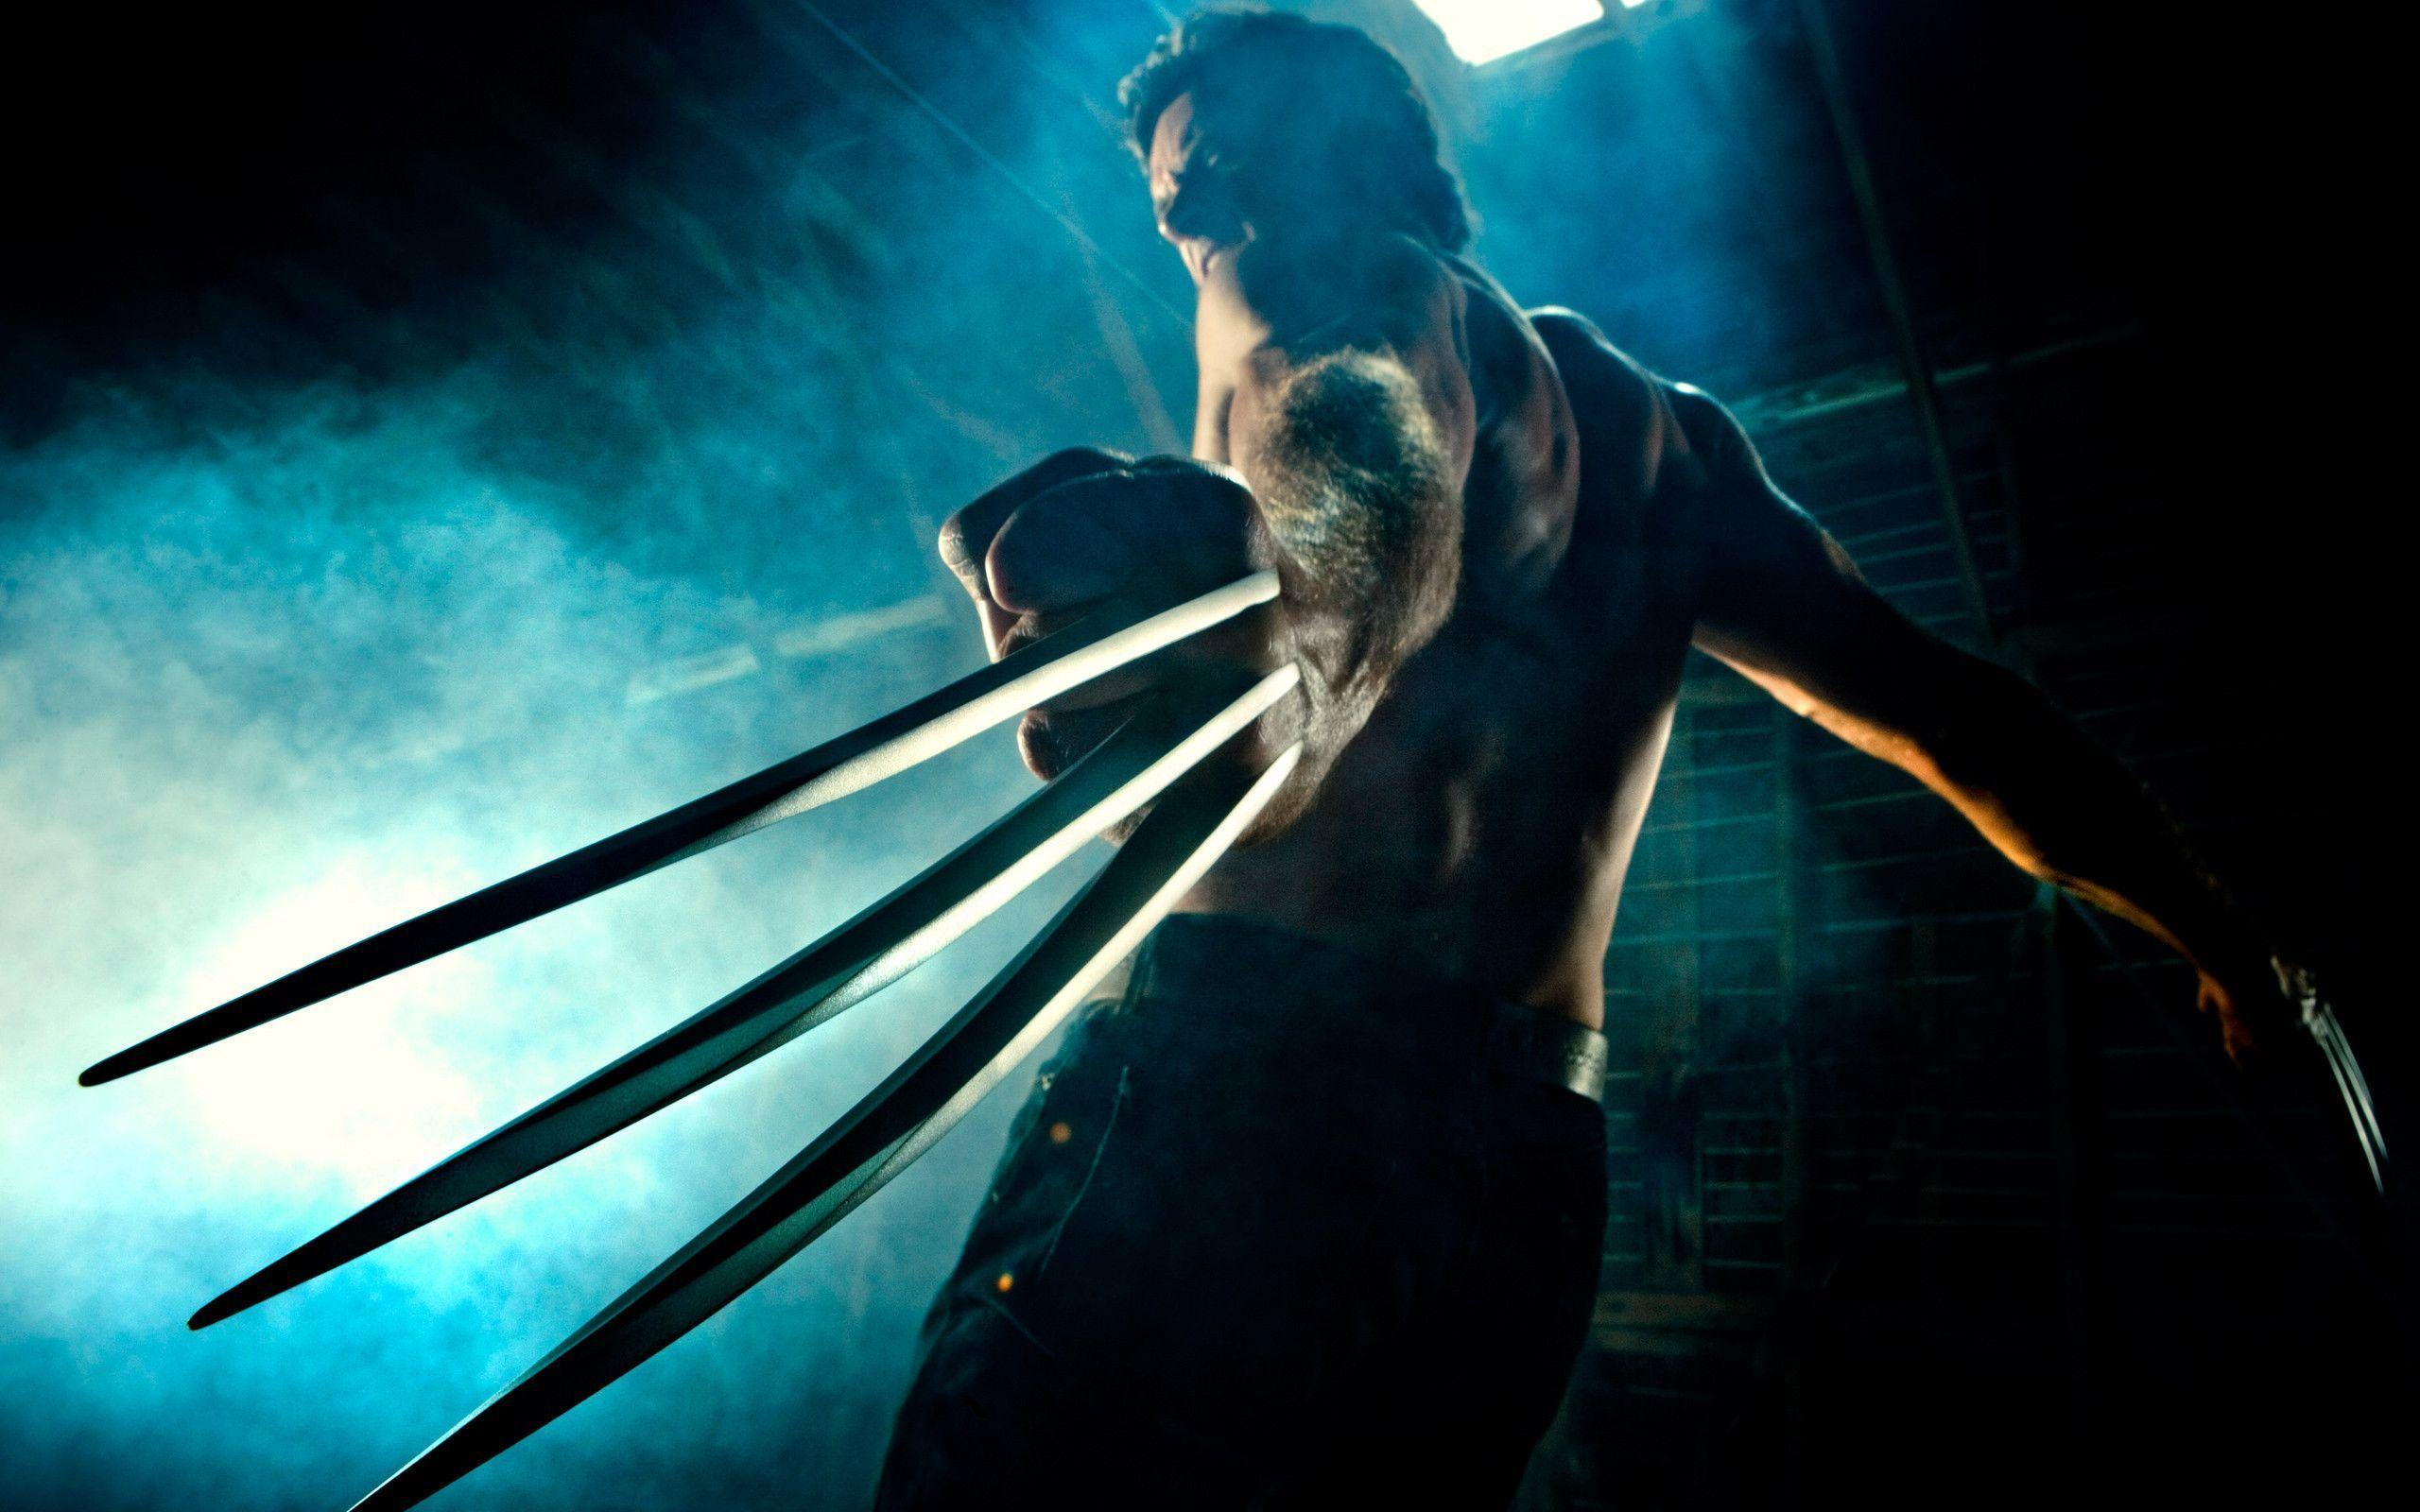 Wolverine X Men WallPaper HD - IMASHON.